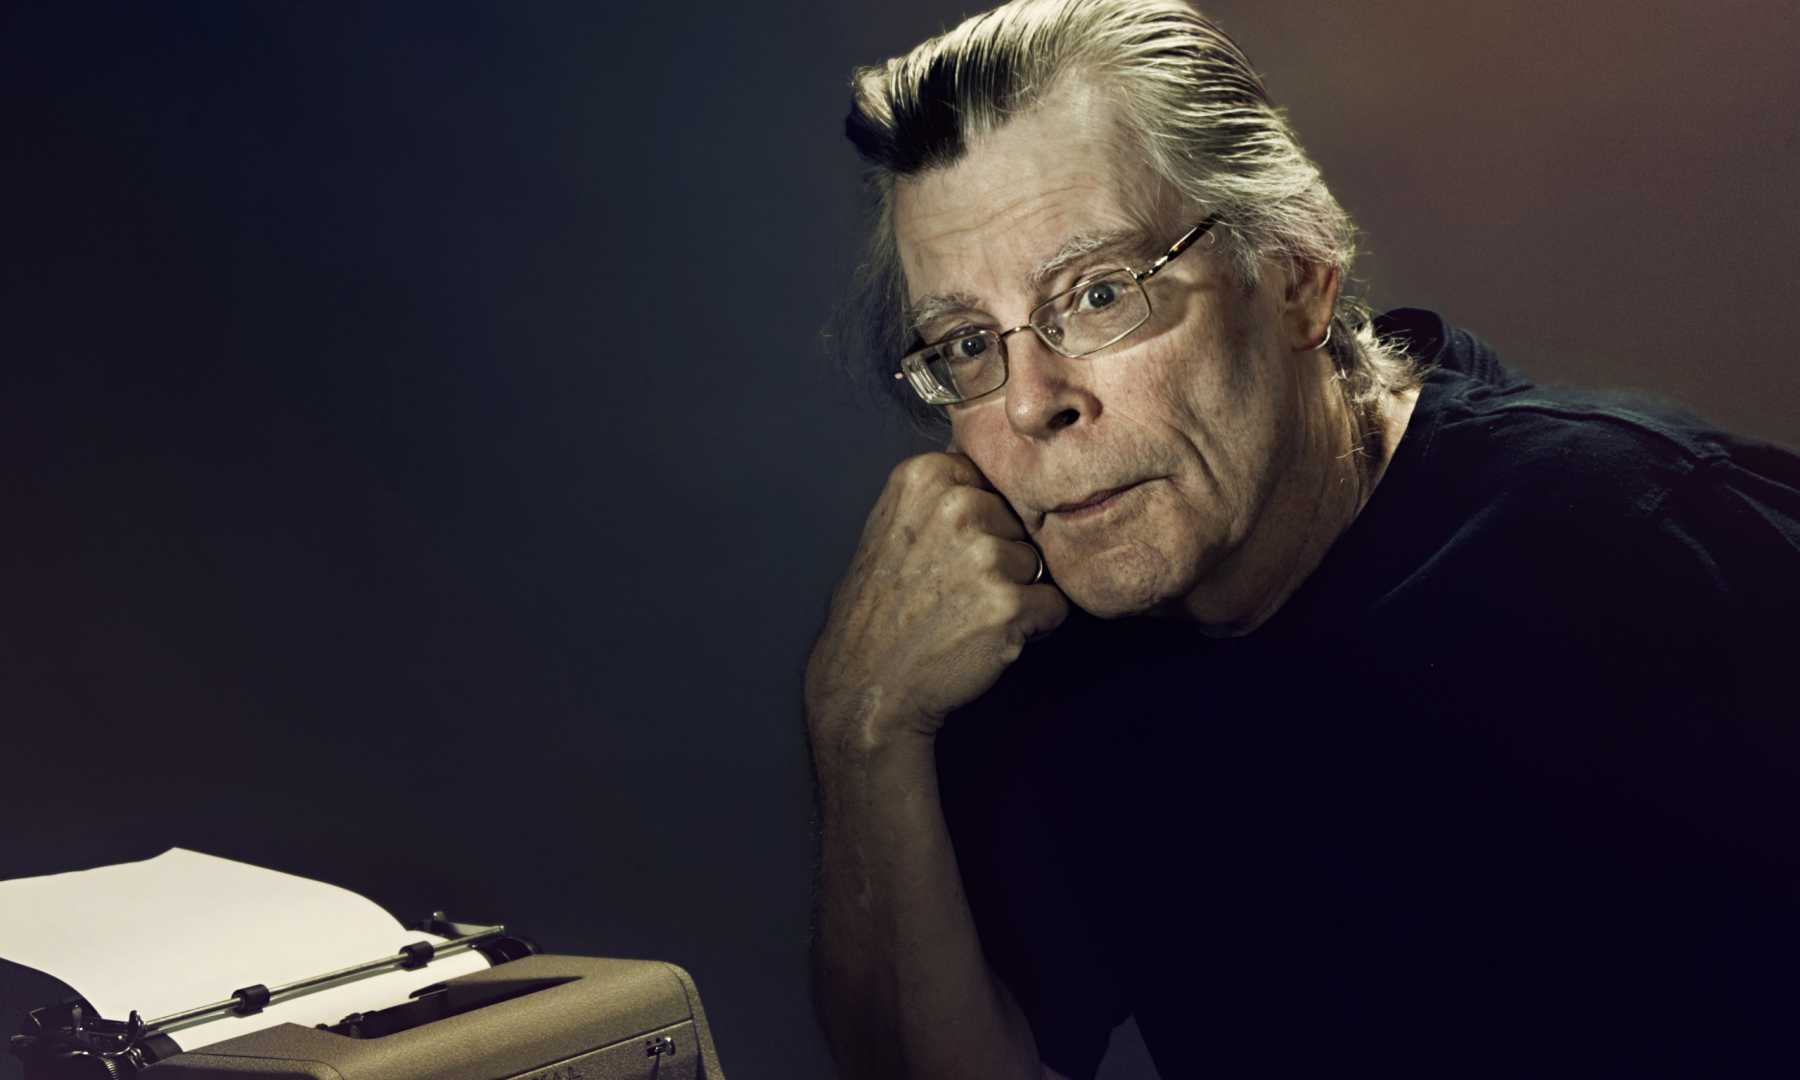 Stephen King Fumes About Gun Control On Twitter | Stephen King